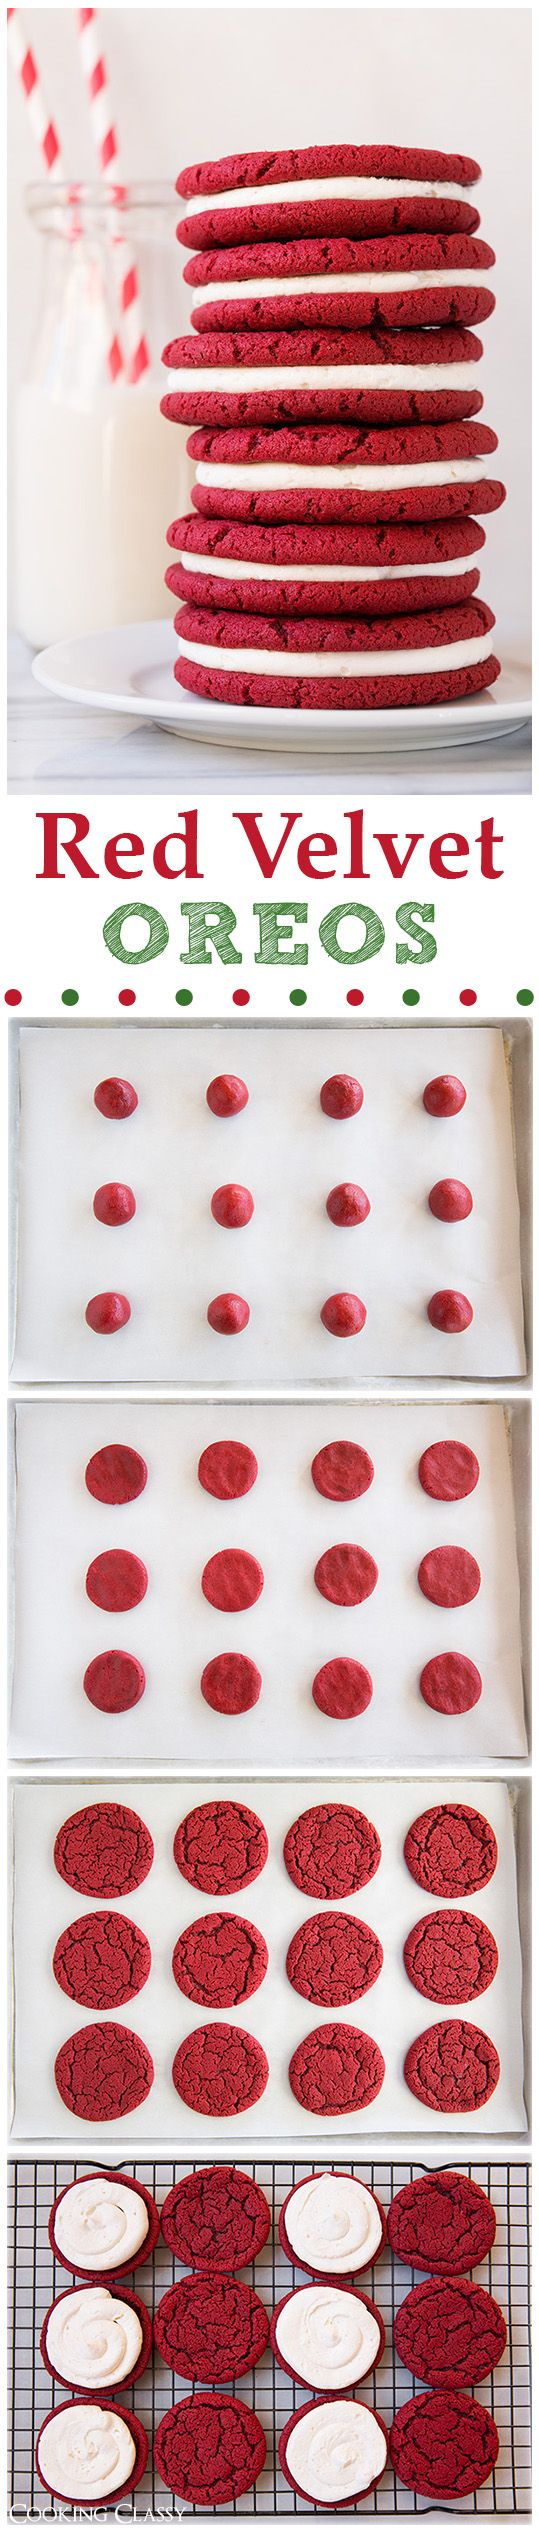 Red Velvet Oreo Cookies – these cookies are unbelievably delicious! If you like red velvet you will LOVE t